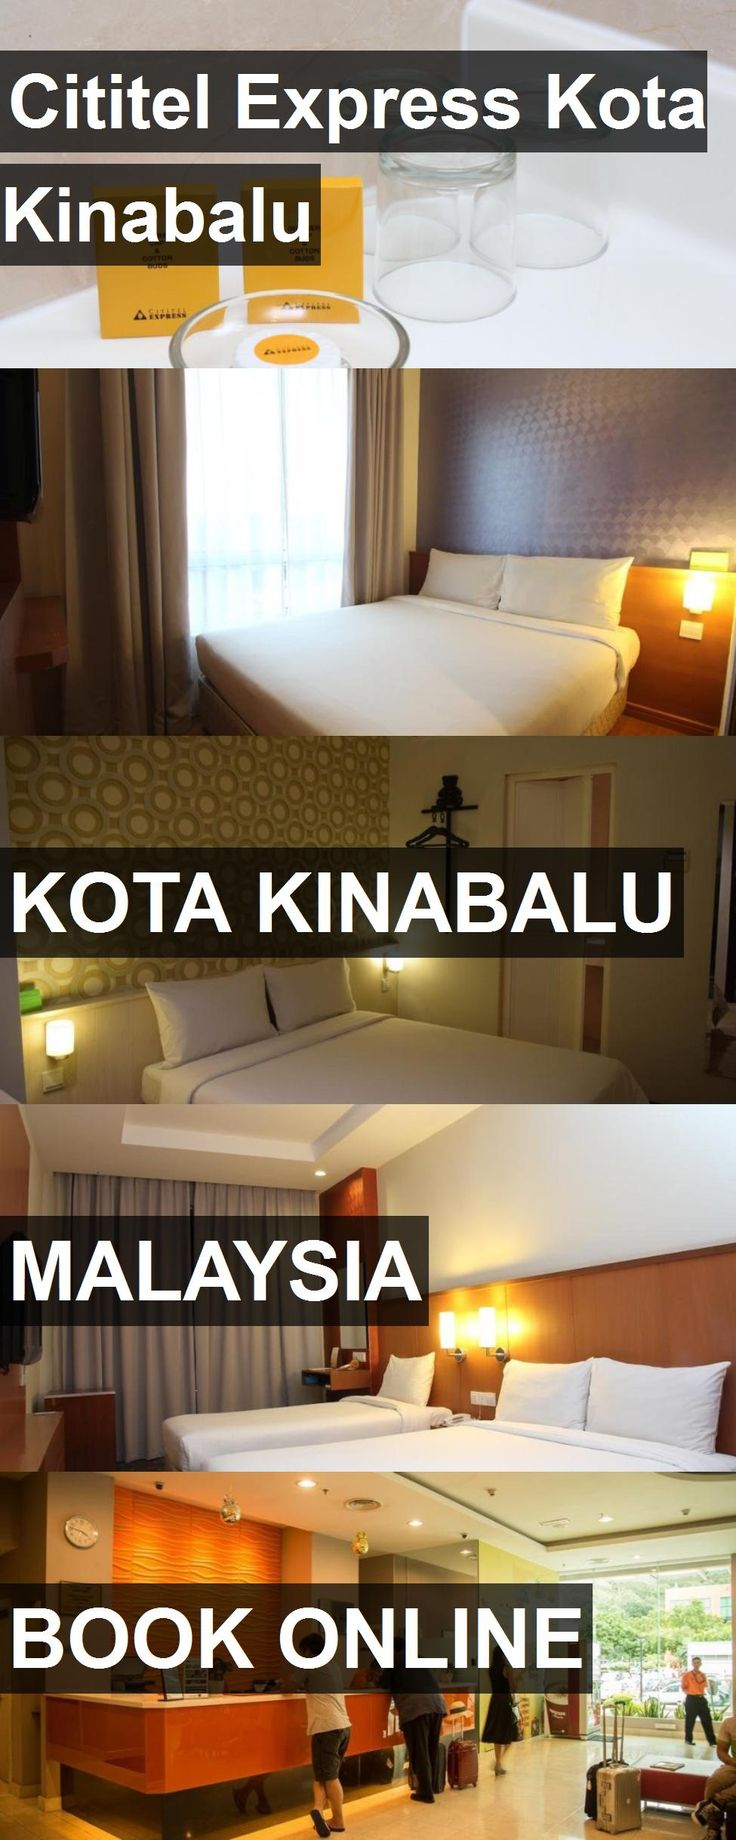 Hotel Cititel Express Kota Kinabalu in Kota Kinabalu, Malaysia. For more information, photos, reviews and best prices please follow the link. #Malaysia #KotaKinabalu #travel #vacation #hotel